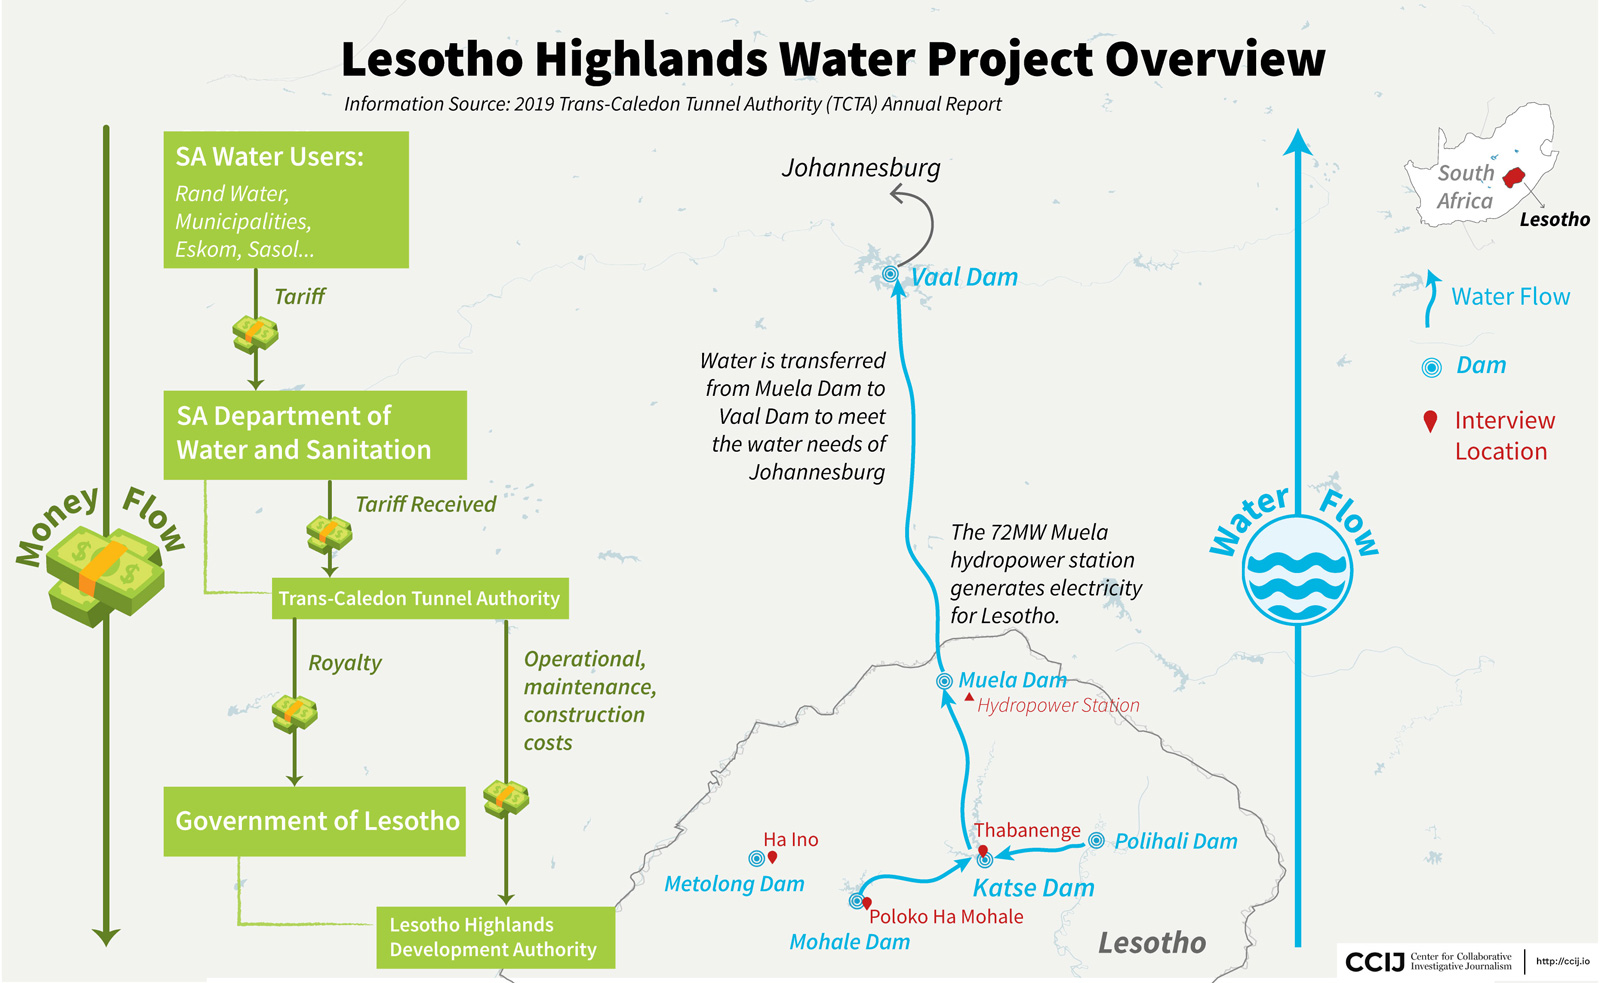 A data visualization graphic that illustrates the money and water flow of the Lesotho Highlands Water Project